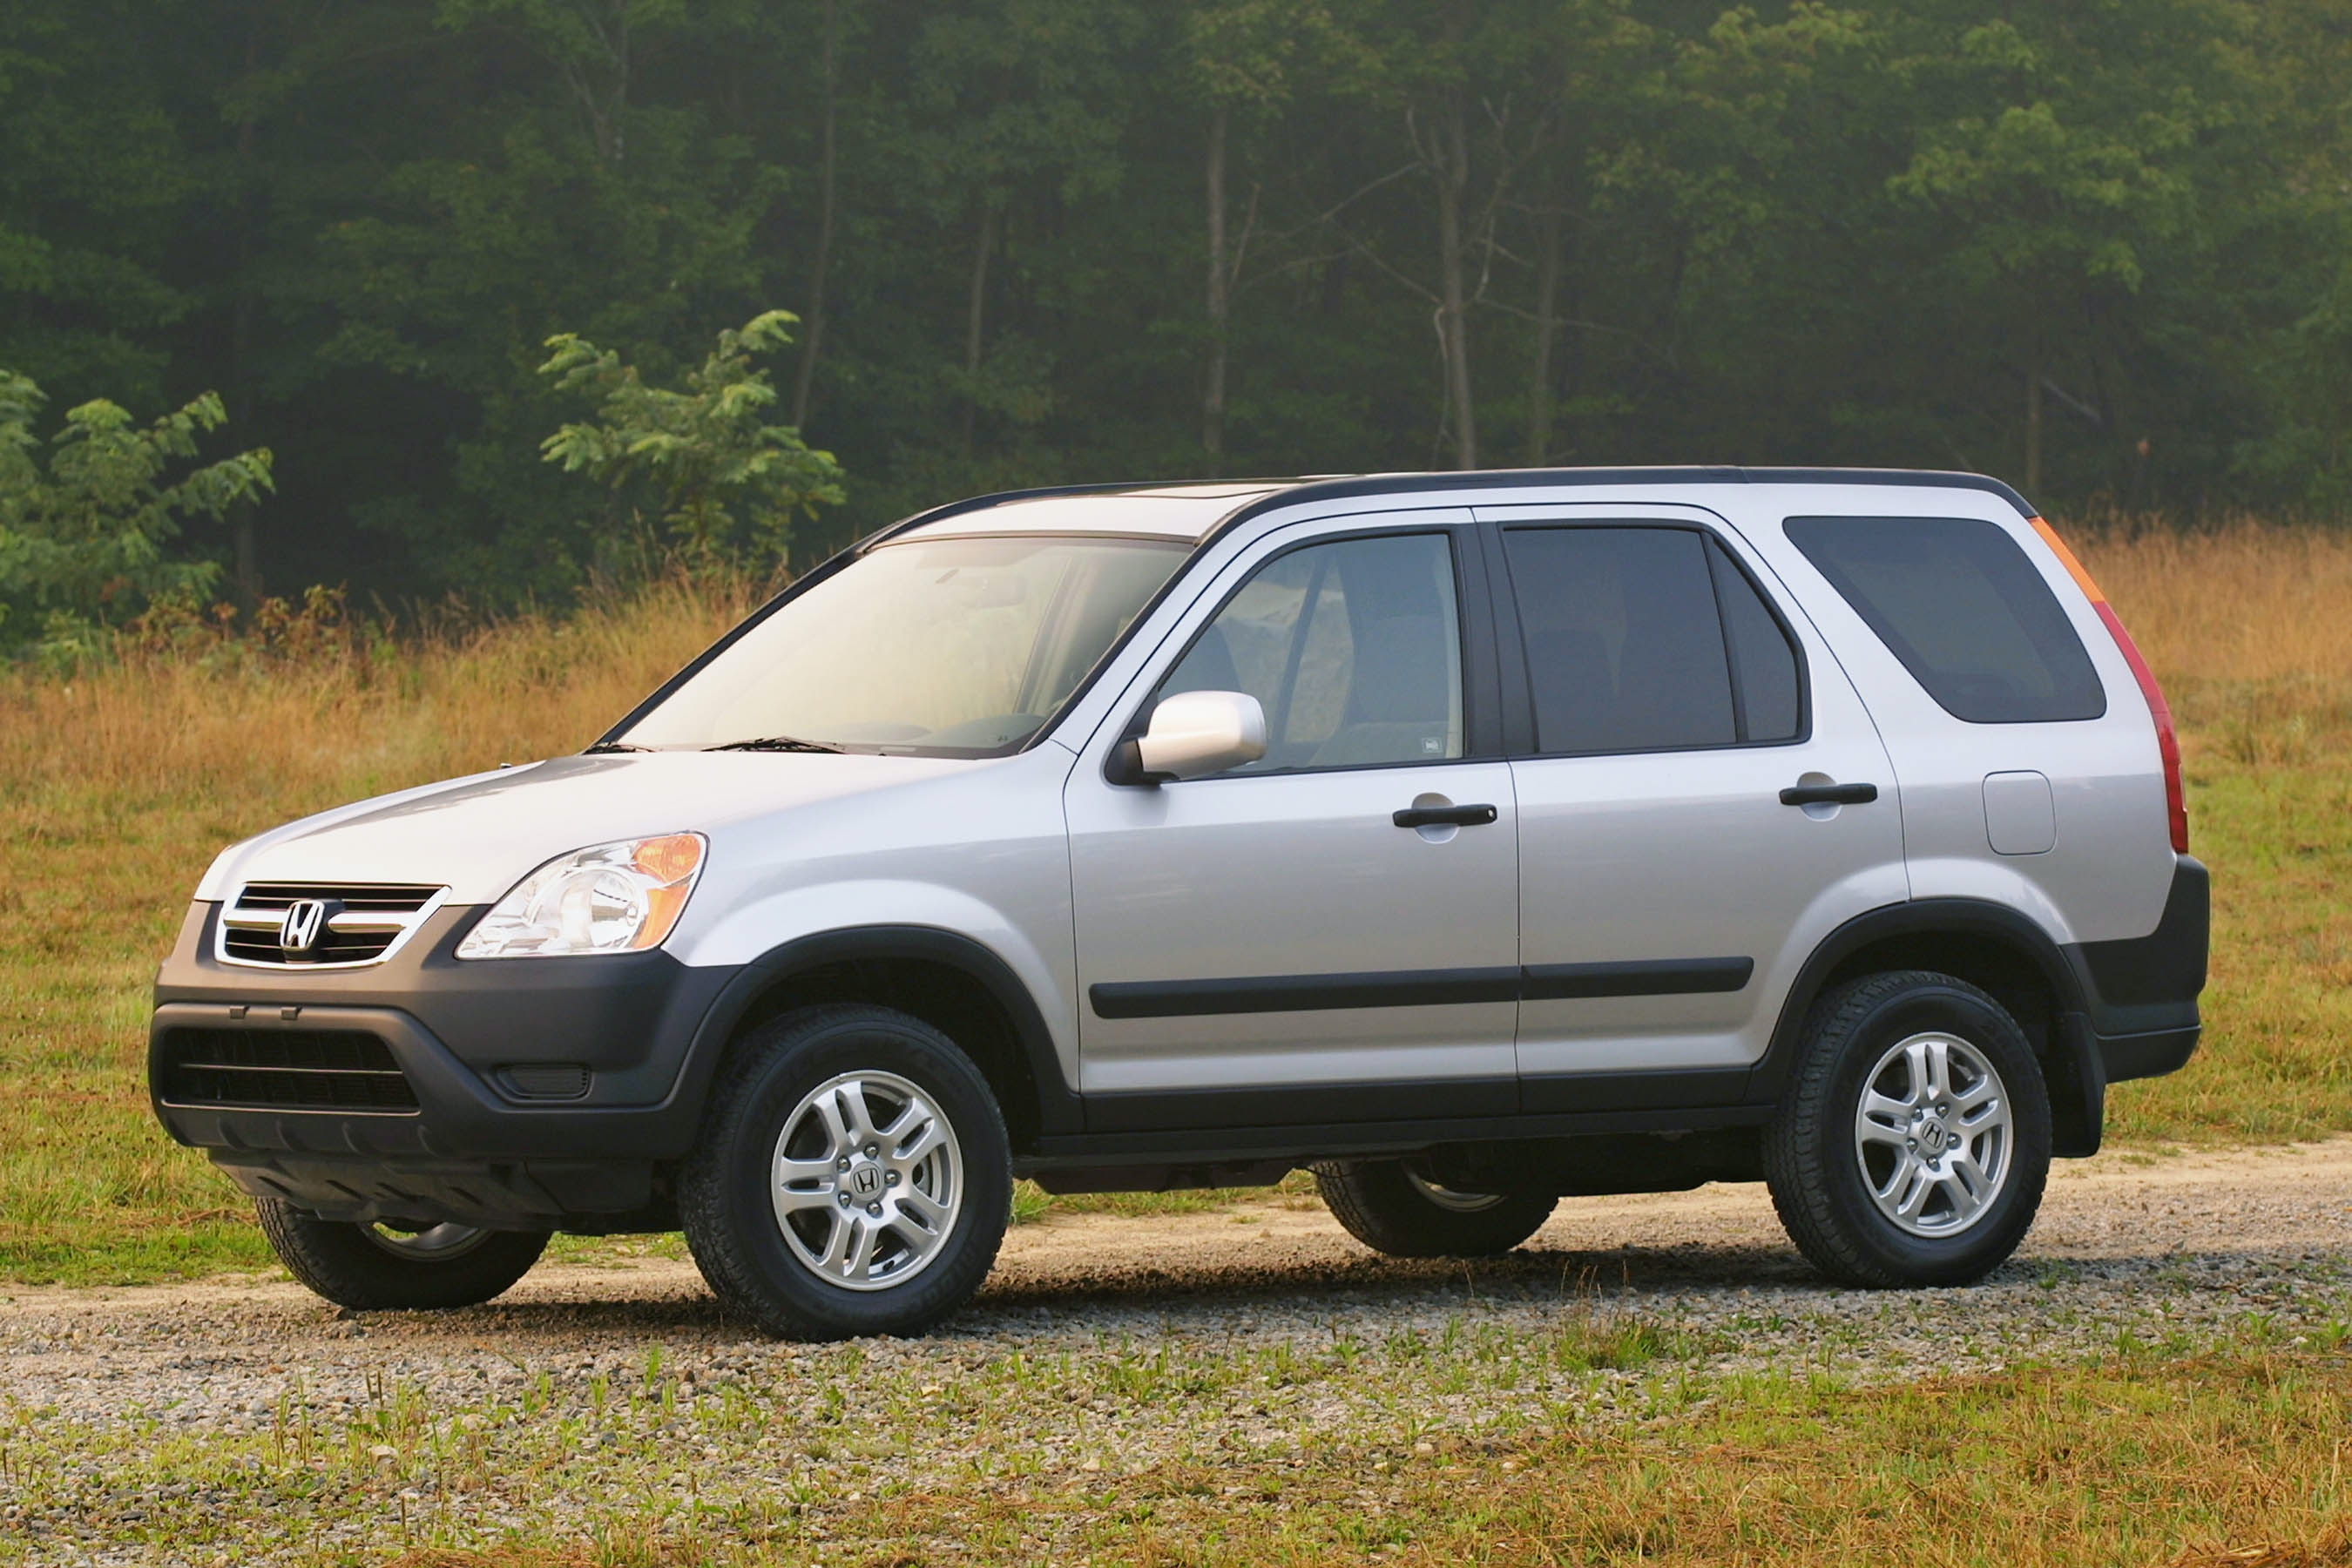 2003 Honda CR V Review | CARFAX Vehicle Research